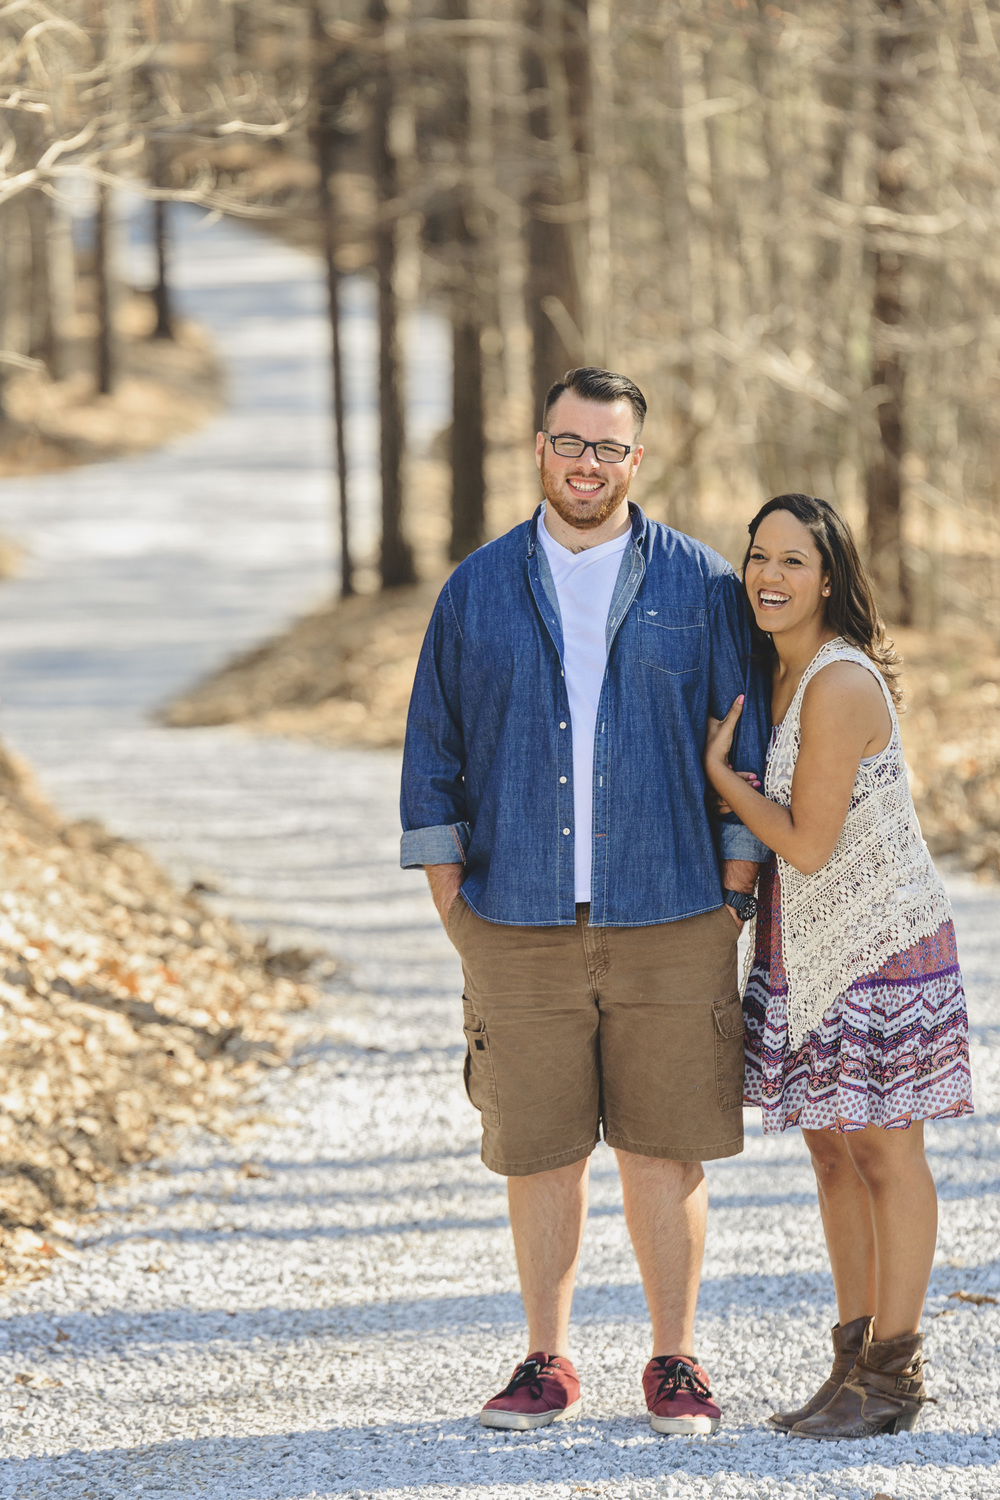 cabin_mountains_romantic_field_engagement_session_lynchburg_va004.jpg